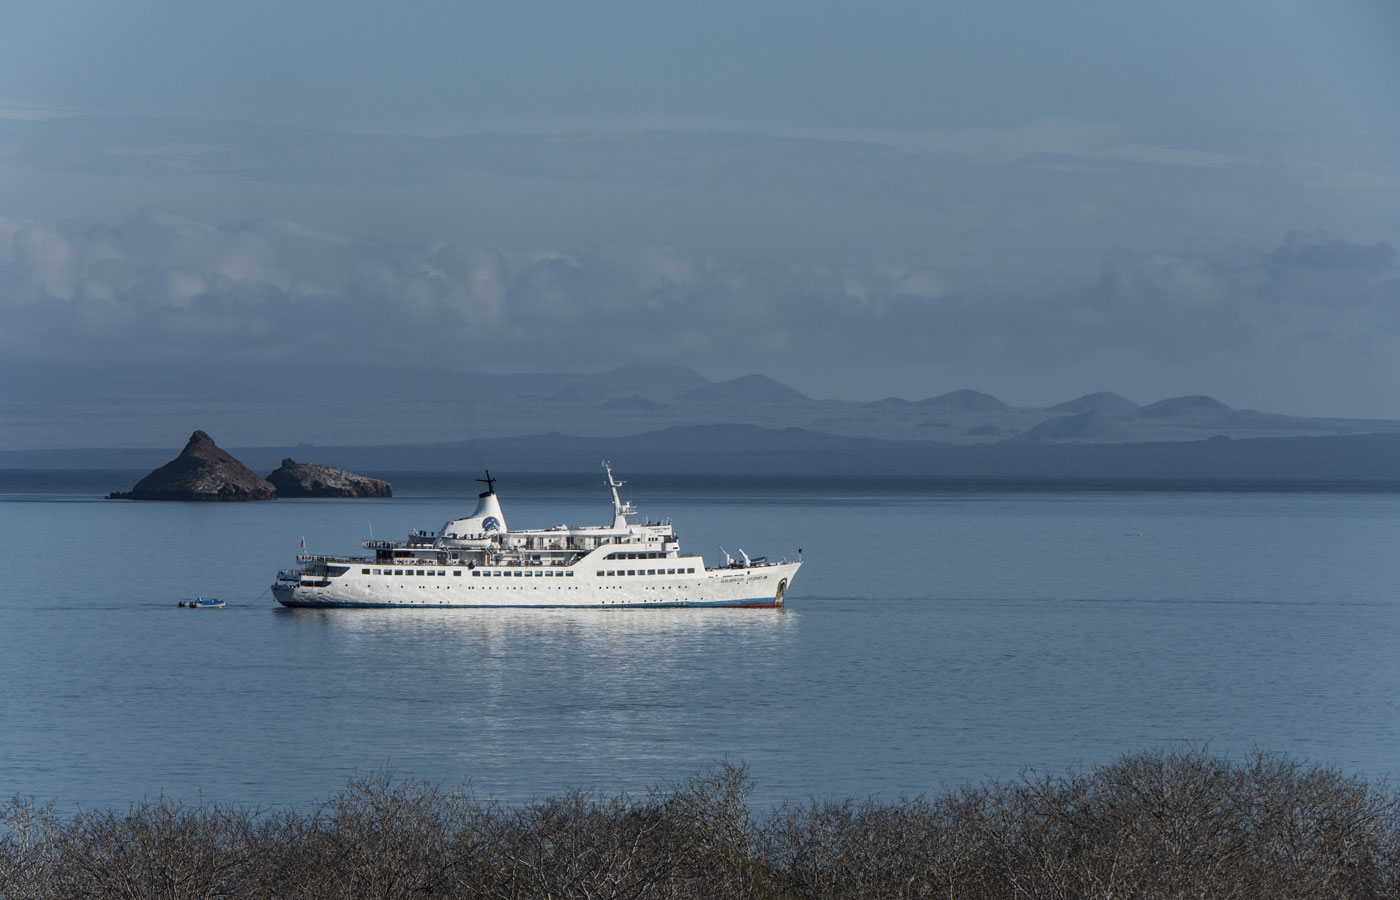 The Galapagos Legend - Exterior View - Luxury holidays in the Galapagos